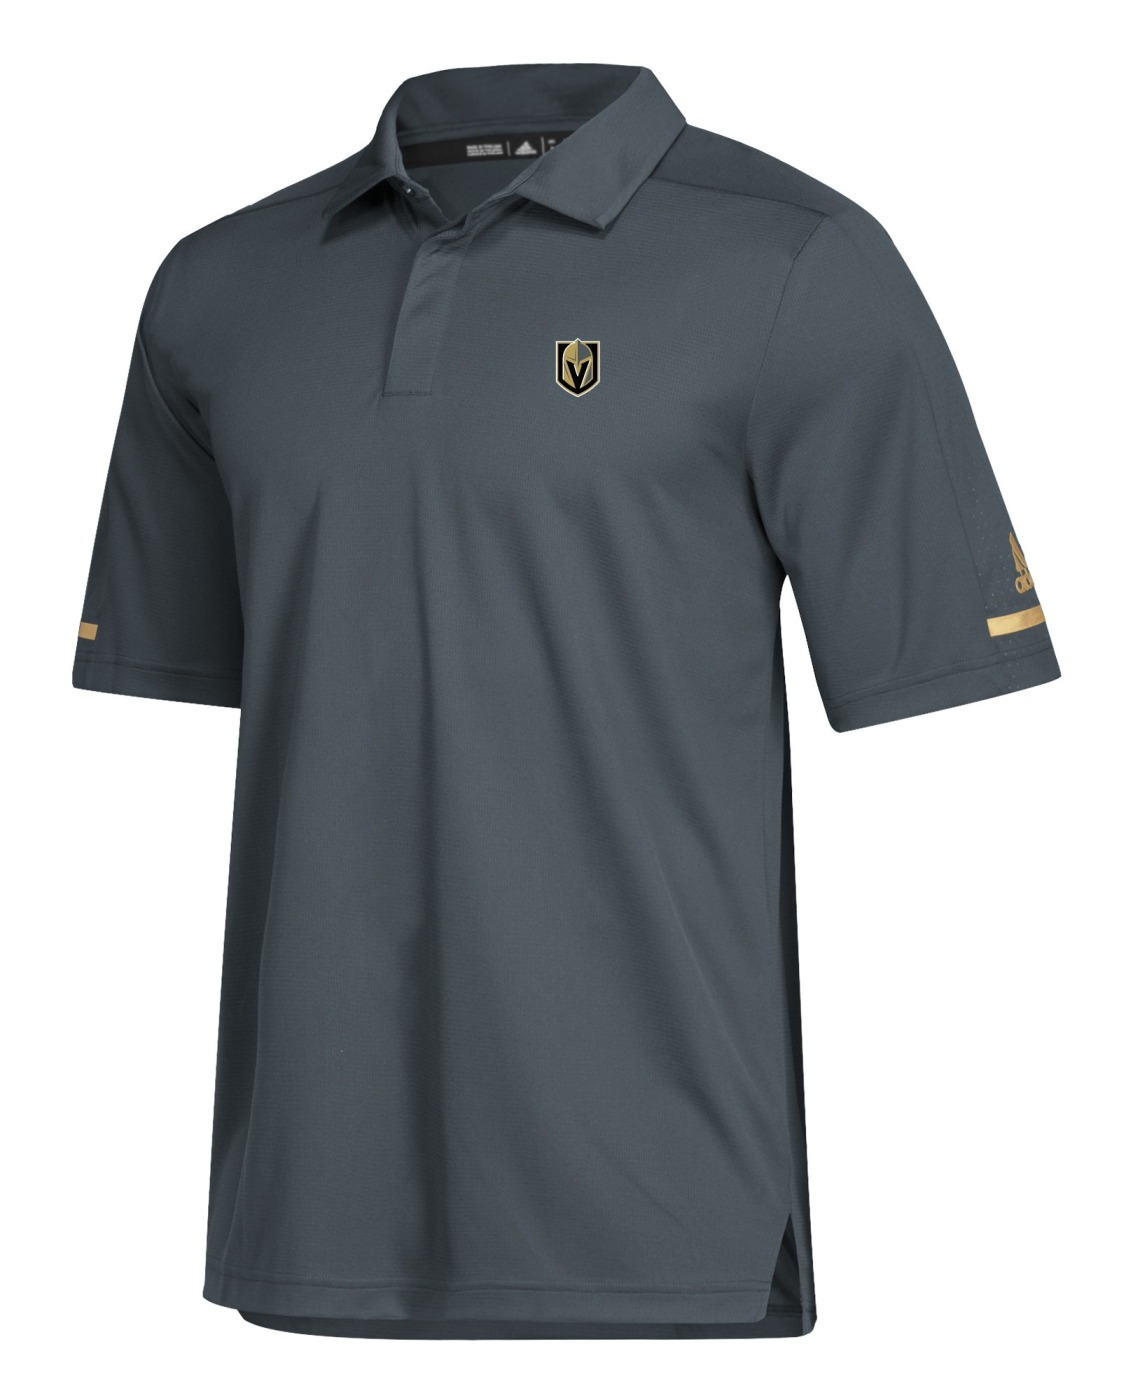 Las Vegas Golden Knights Adidas NHL Men's 2018 Authentic Game Day Polo Shirt